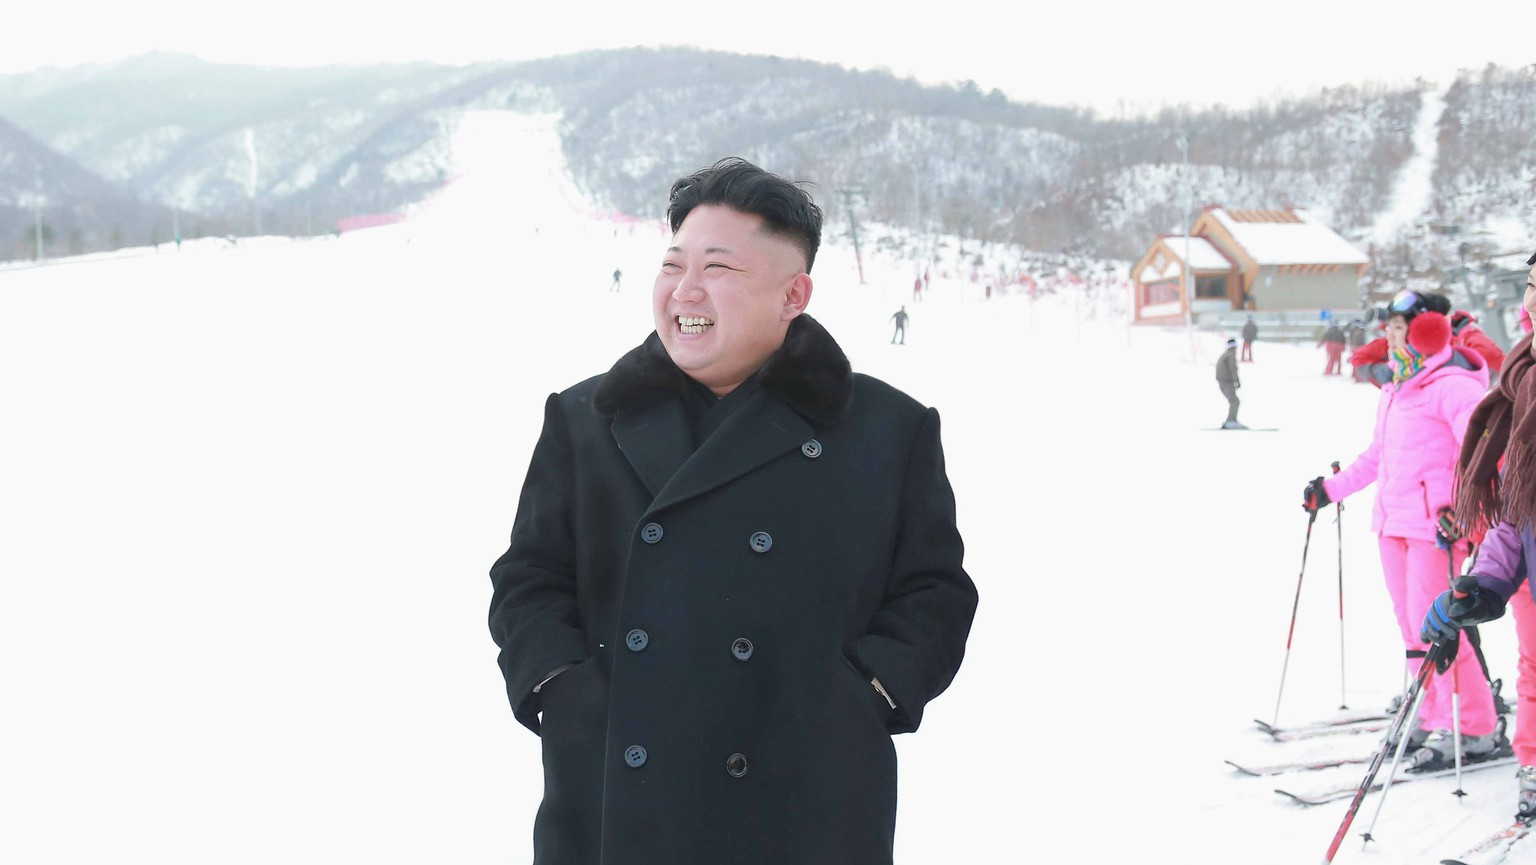 North Korean leader Kim Jong Un visits the newly built ski resort in the Masik Pass region, in this undated photo released by North Korea's Korean Central News Agency (KCNA) in Pyongyang on December 31, 2013. North Korea's state-run television KRT said Kim was satisfied with the ski resort after looking around its facilities which included a hotel, ski service and rental shops.     REUTERS/KCNA (NORTH KOREA - Tags: POLITICS SOCIETY TPX IMAGES OF THE DAY) ATTENTION EDITORS - THIS PICTURE WAS PROVIDED BY A THIRD PARTY. REUTERS IS UNABLE TO INDEPENDENTLY VERIFY THE AUTHENTICITY, CONTENT, LOCATION OR DATE OF THIS IMAGE. FOR EDITORIAL USE ONLY. NOT FOR SALE FOR MARKETING OR ADVERTISING CAMPAIGNS. THIS PICTURE IS DISTRIBUTED EXACTLY AS RECEIVED BY REUTERS, AS A SERVICE TO CLIENTS. NO THIRD PARTY SALES. NOT FOR USE BY REUTERS THIRD PARTY DISTRIBUTORS. SOUTH KOREA OUT. NO COMMERCIAL OR EDITORIAL SALES IN SOUTH KOREA